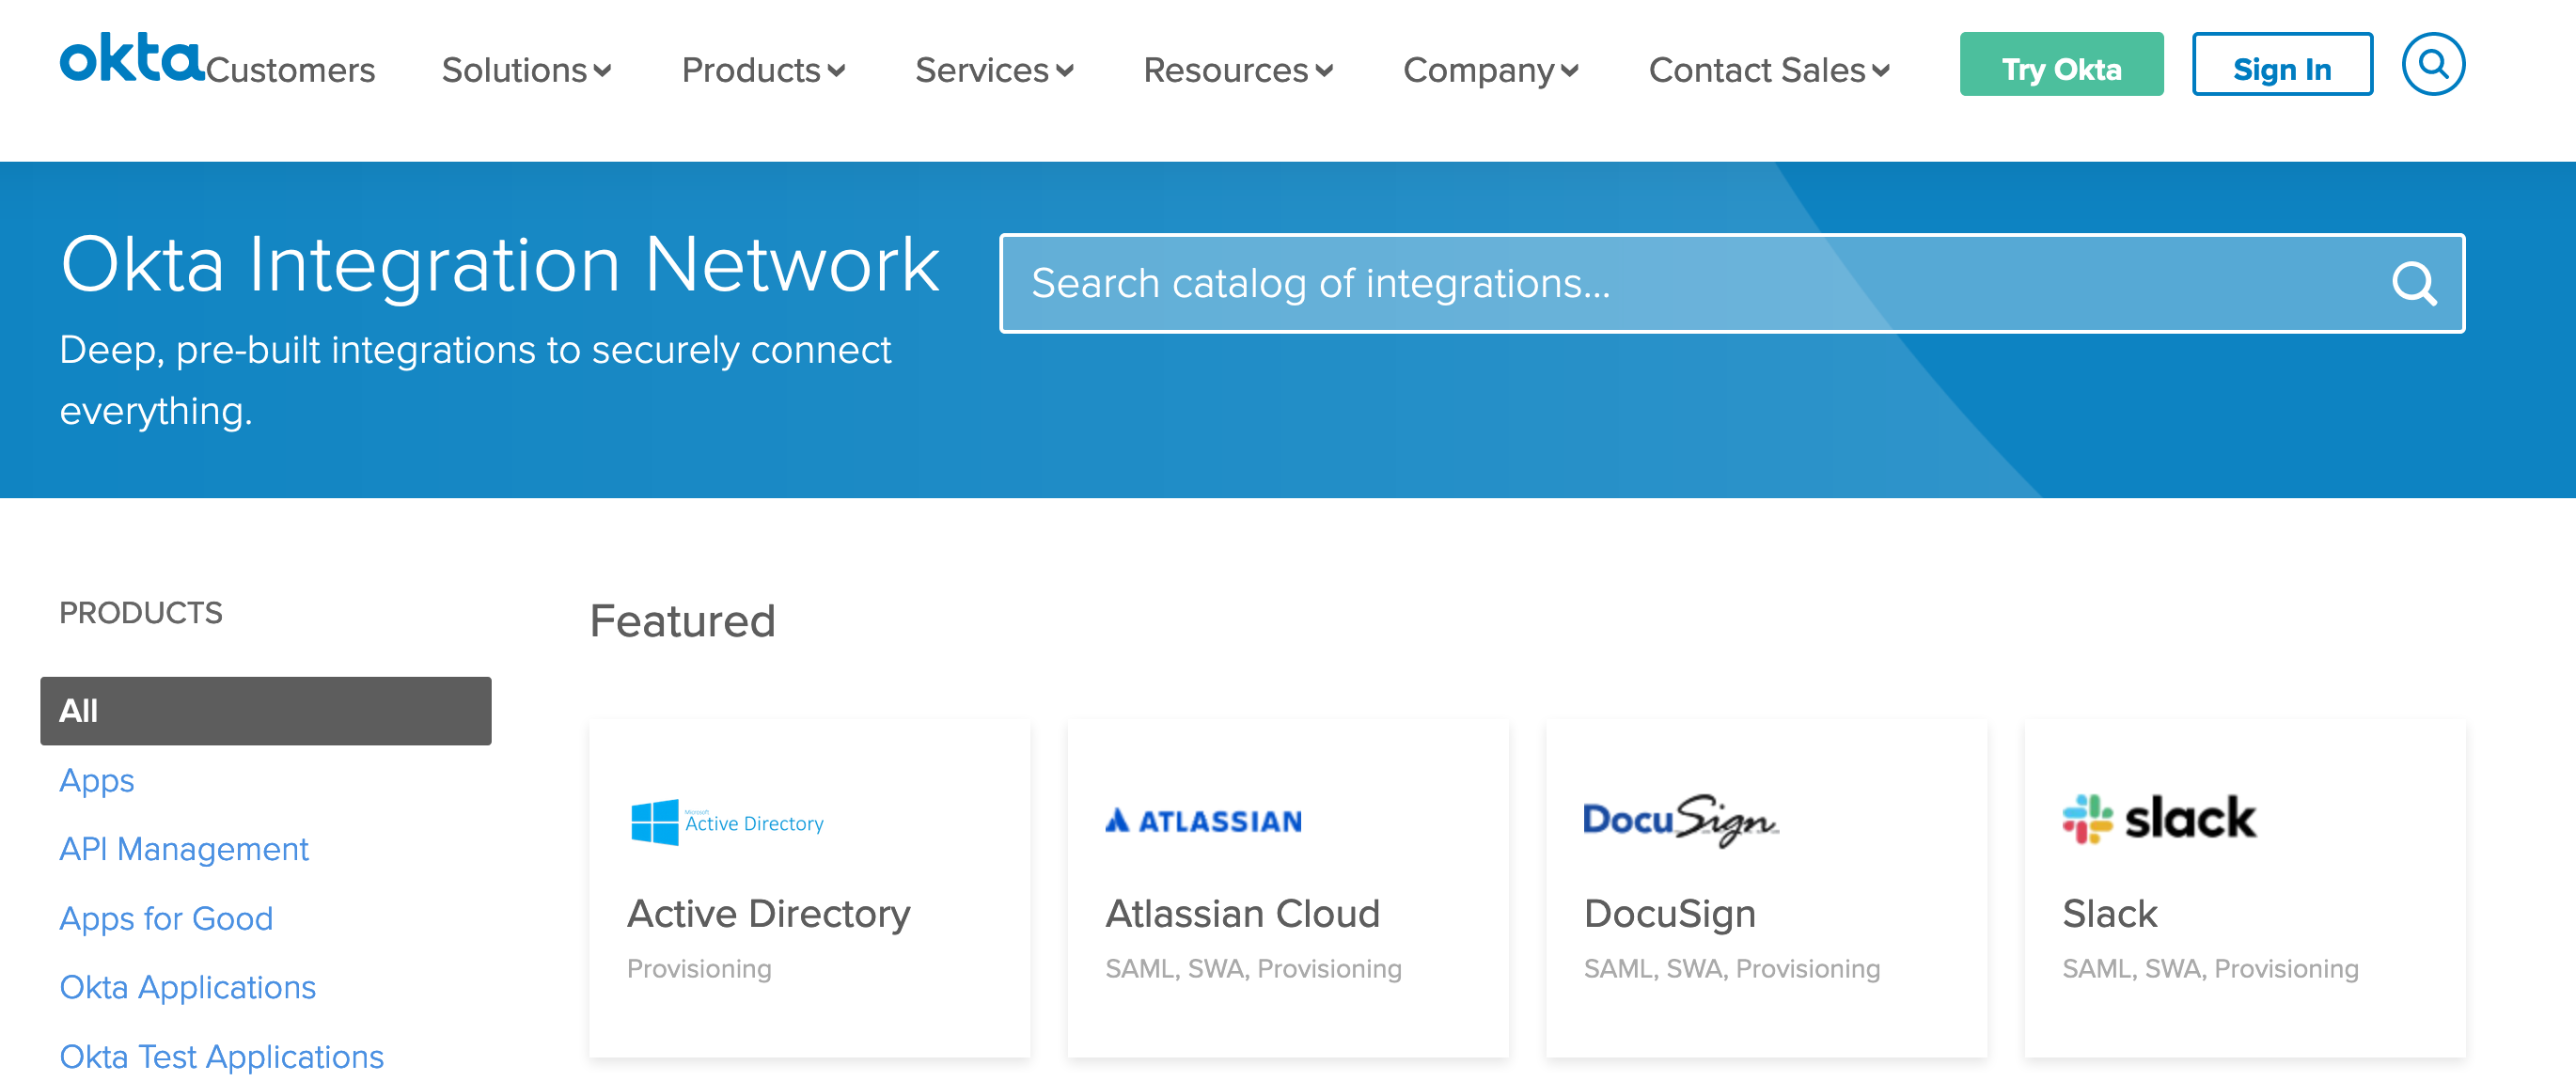 Okta Integration Network marketplace